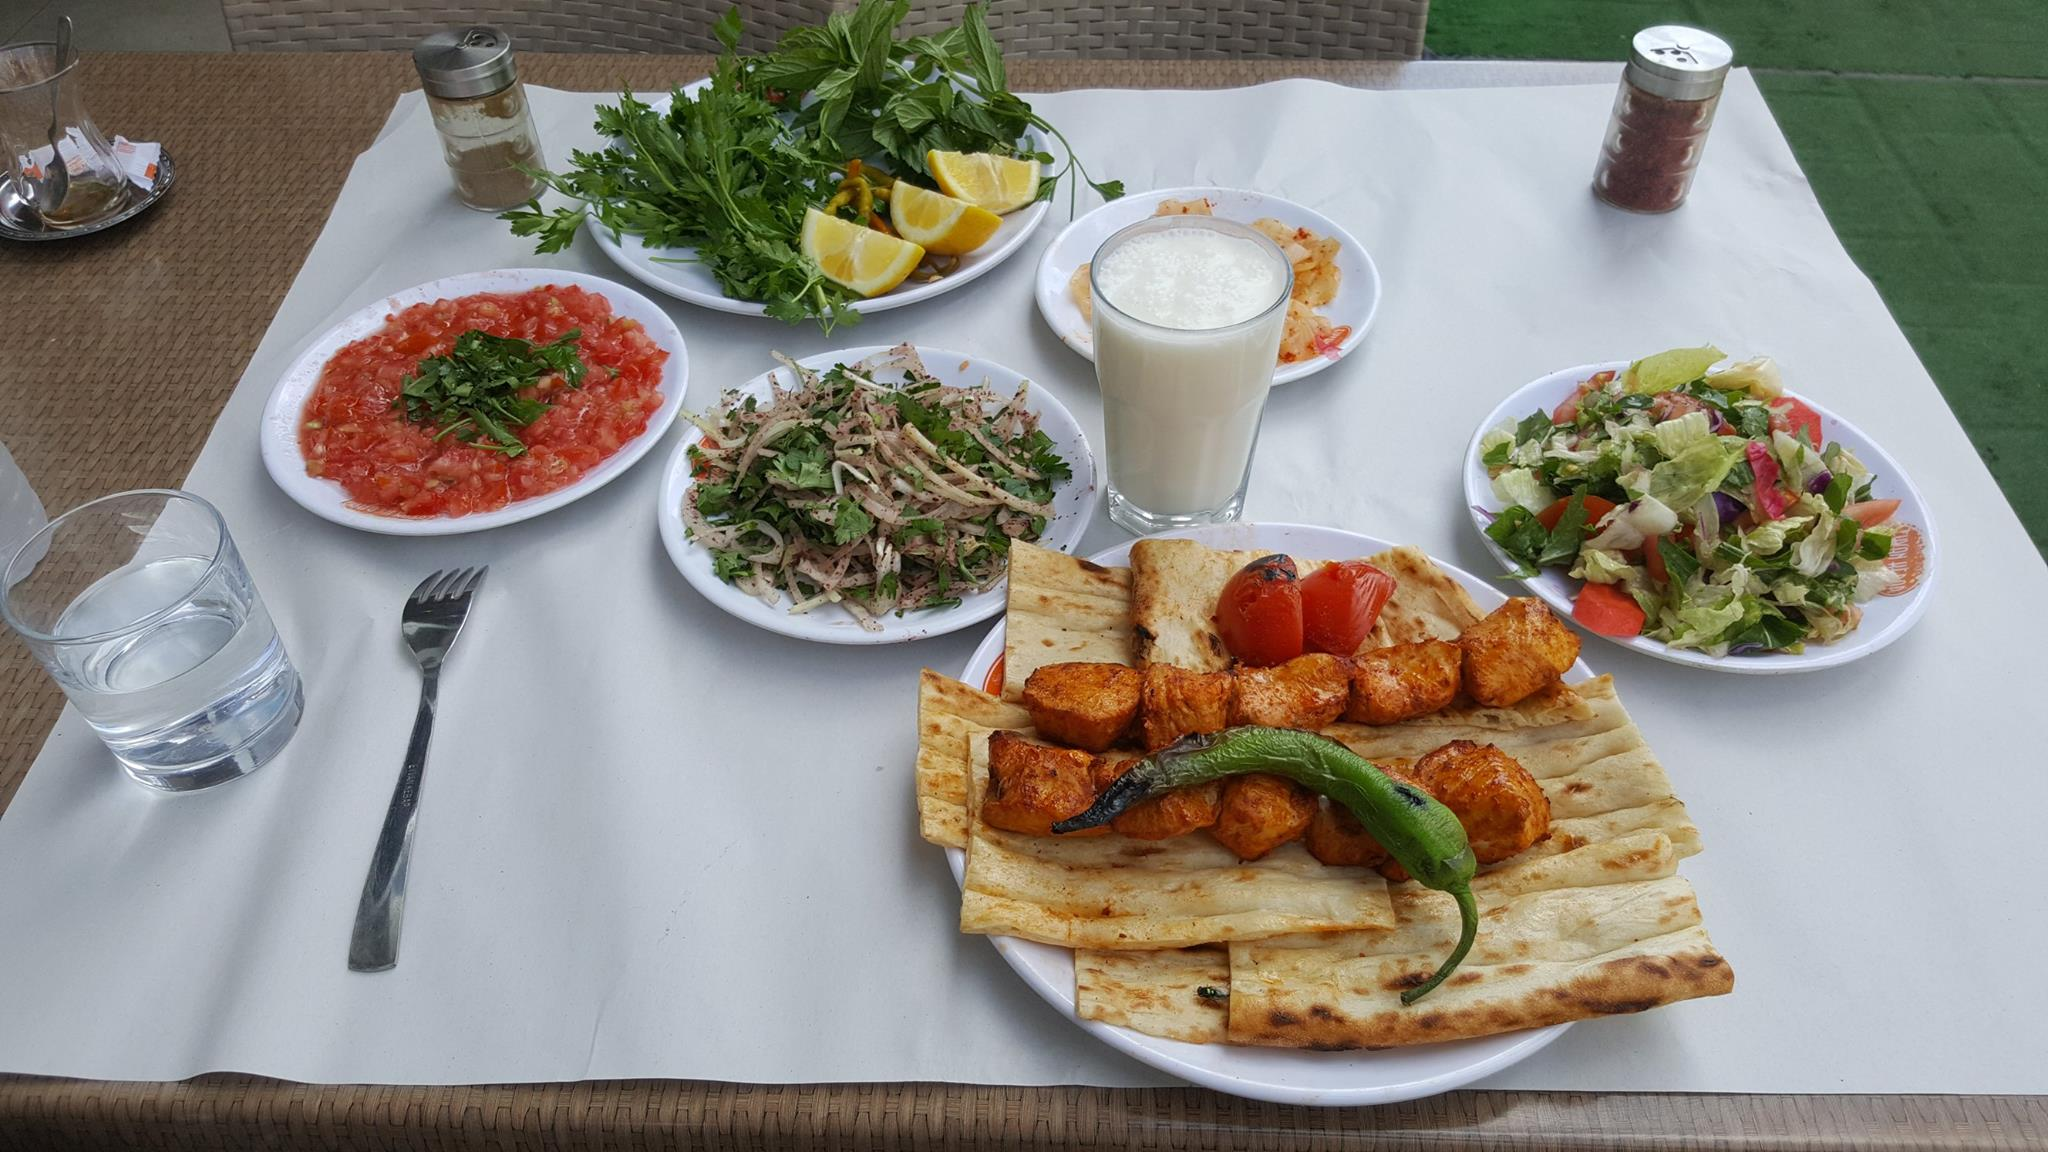 Why you don't need to order salad in Turkish restaurant